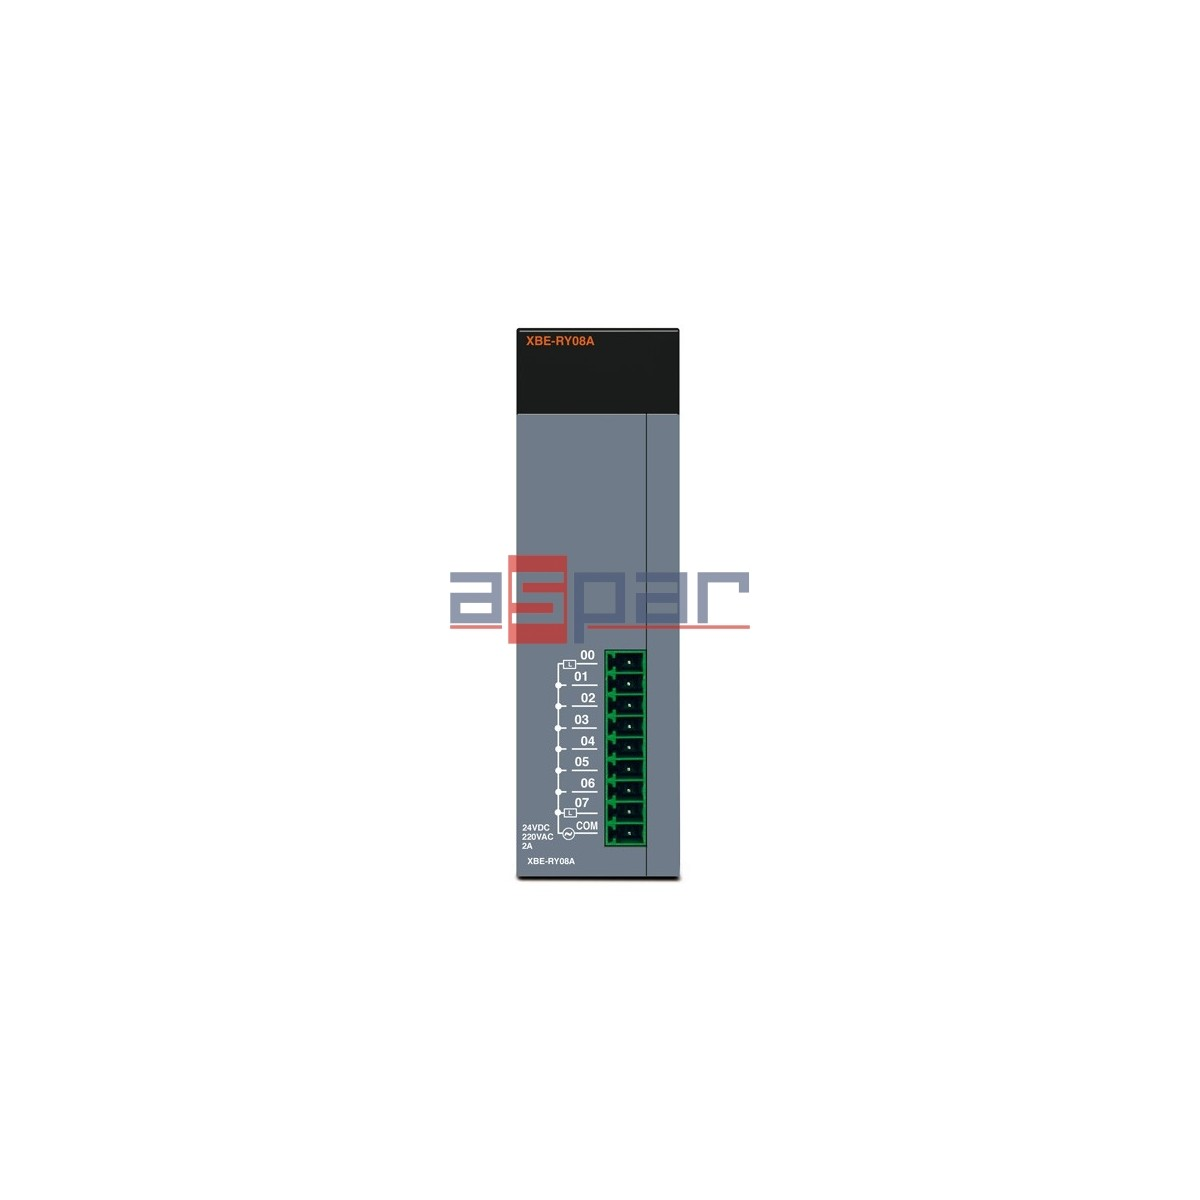 XBE-RY08A - 8 relay outputs